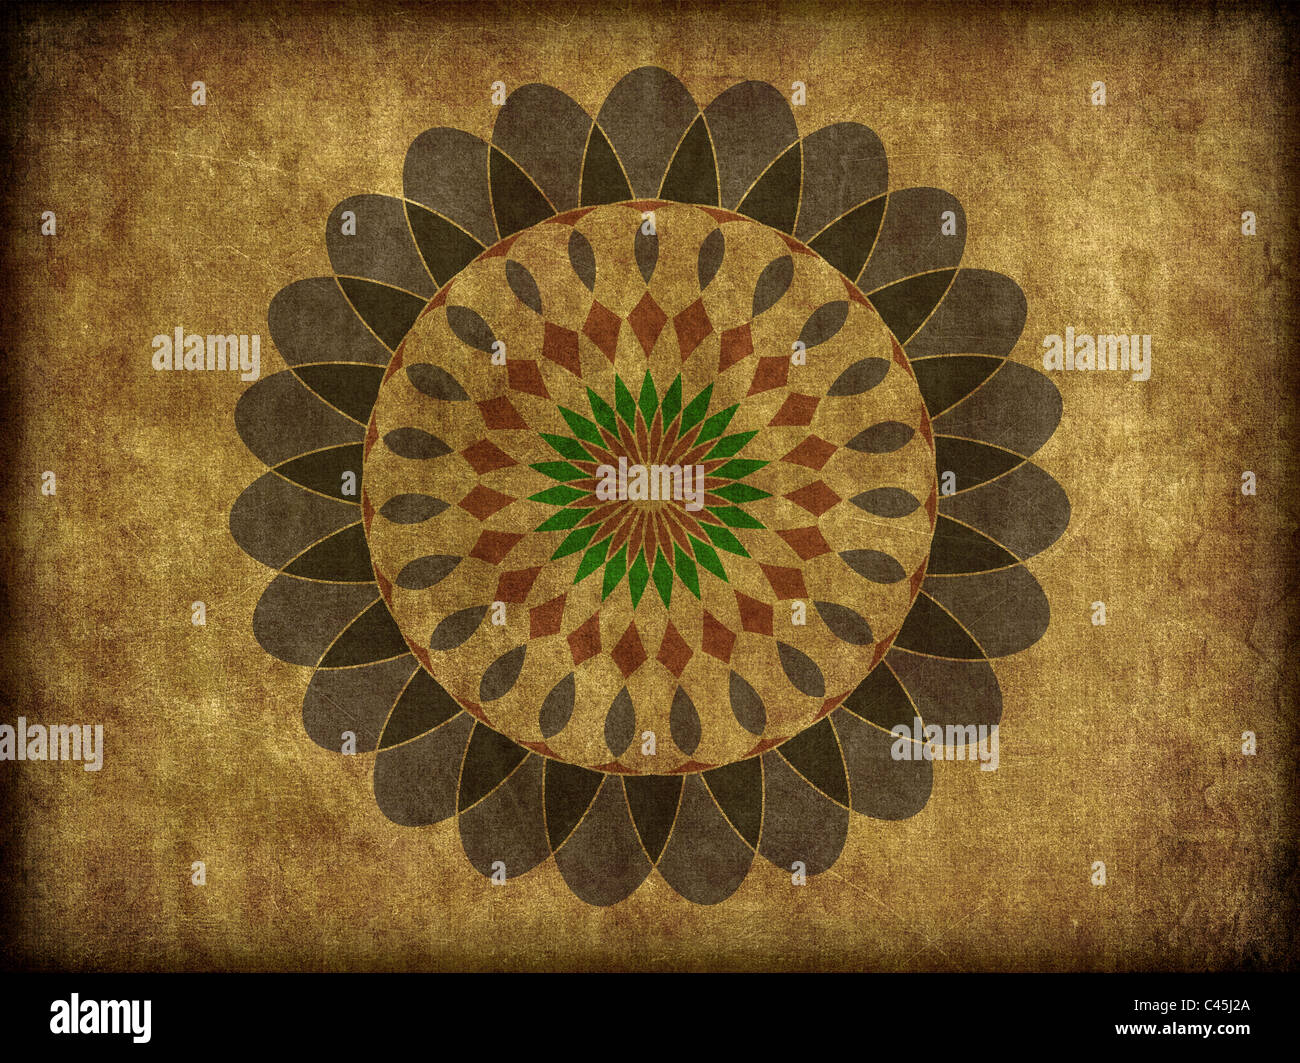 A floral spiro type, or mandala pattern on rough background texture. - Stock Image